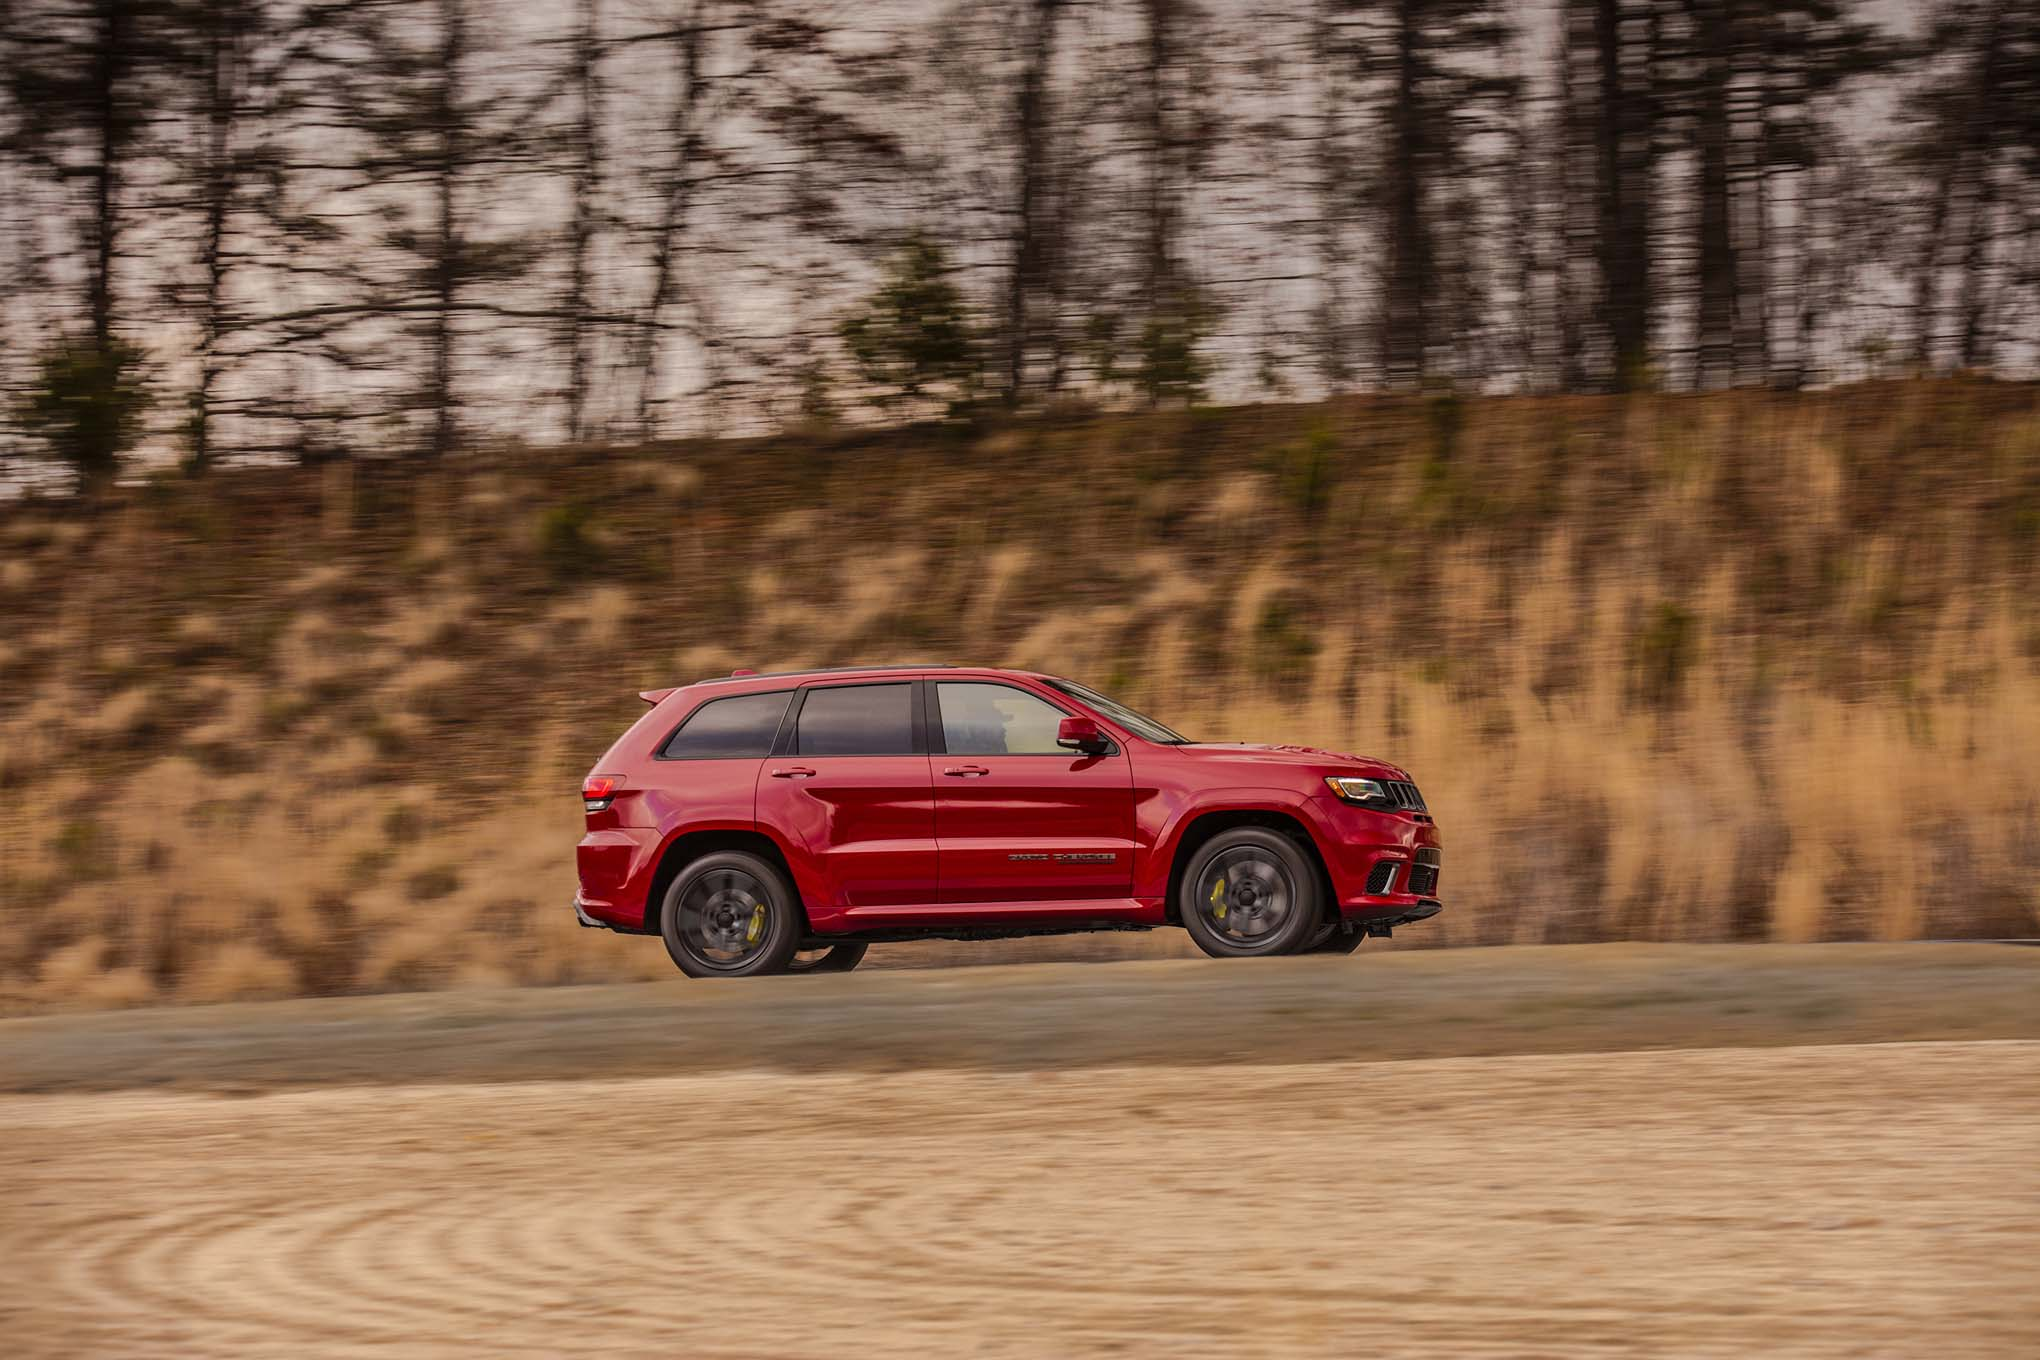 Jeep puts a price on the high-powered SUV glory of its Trackhawk